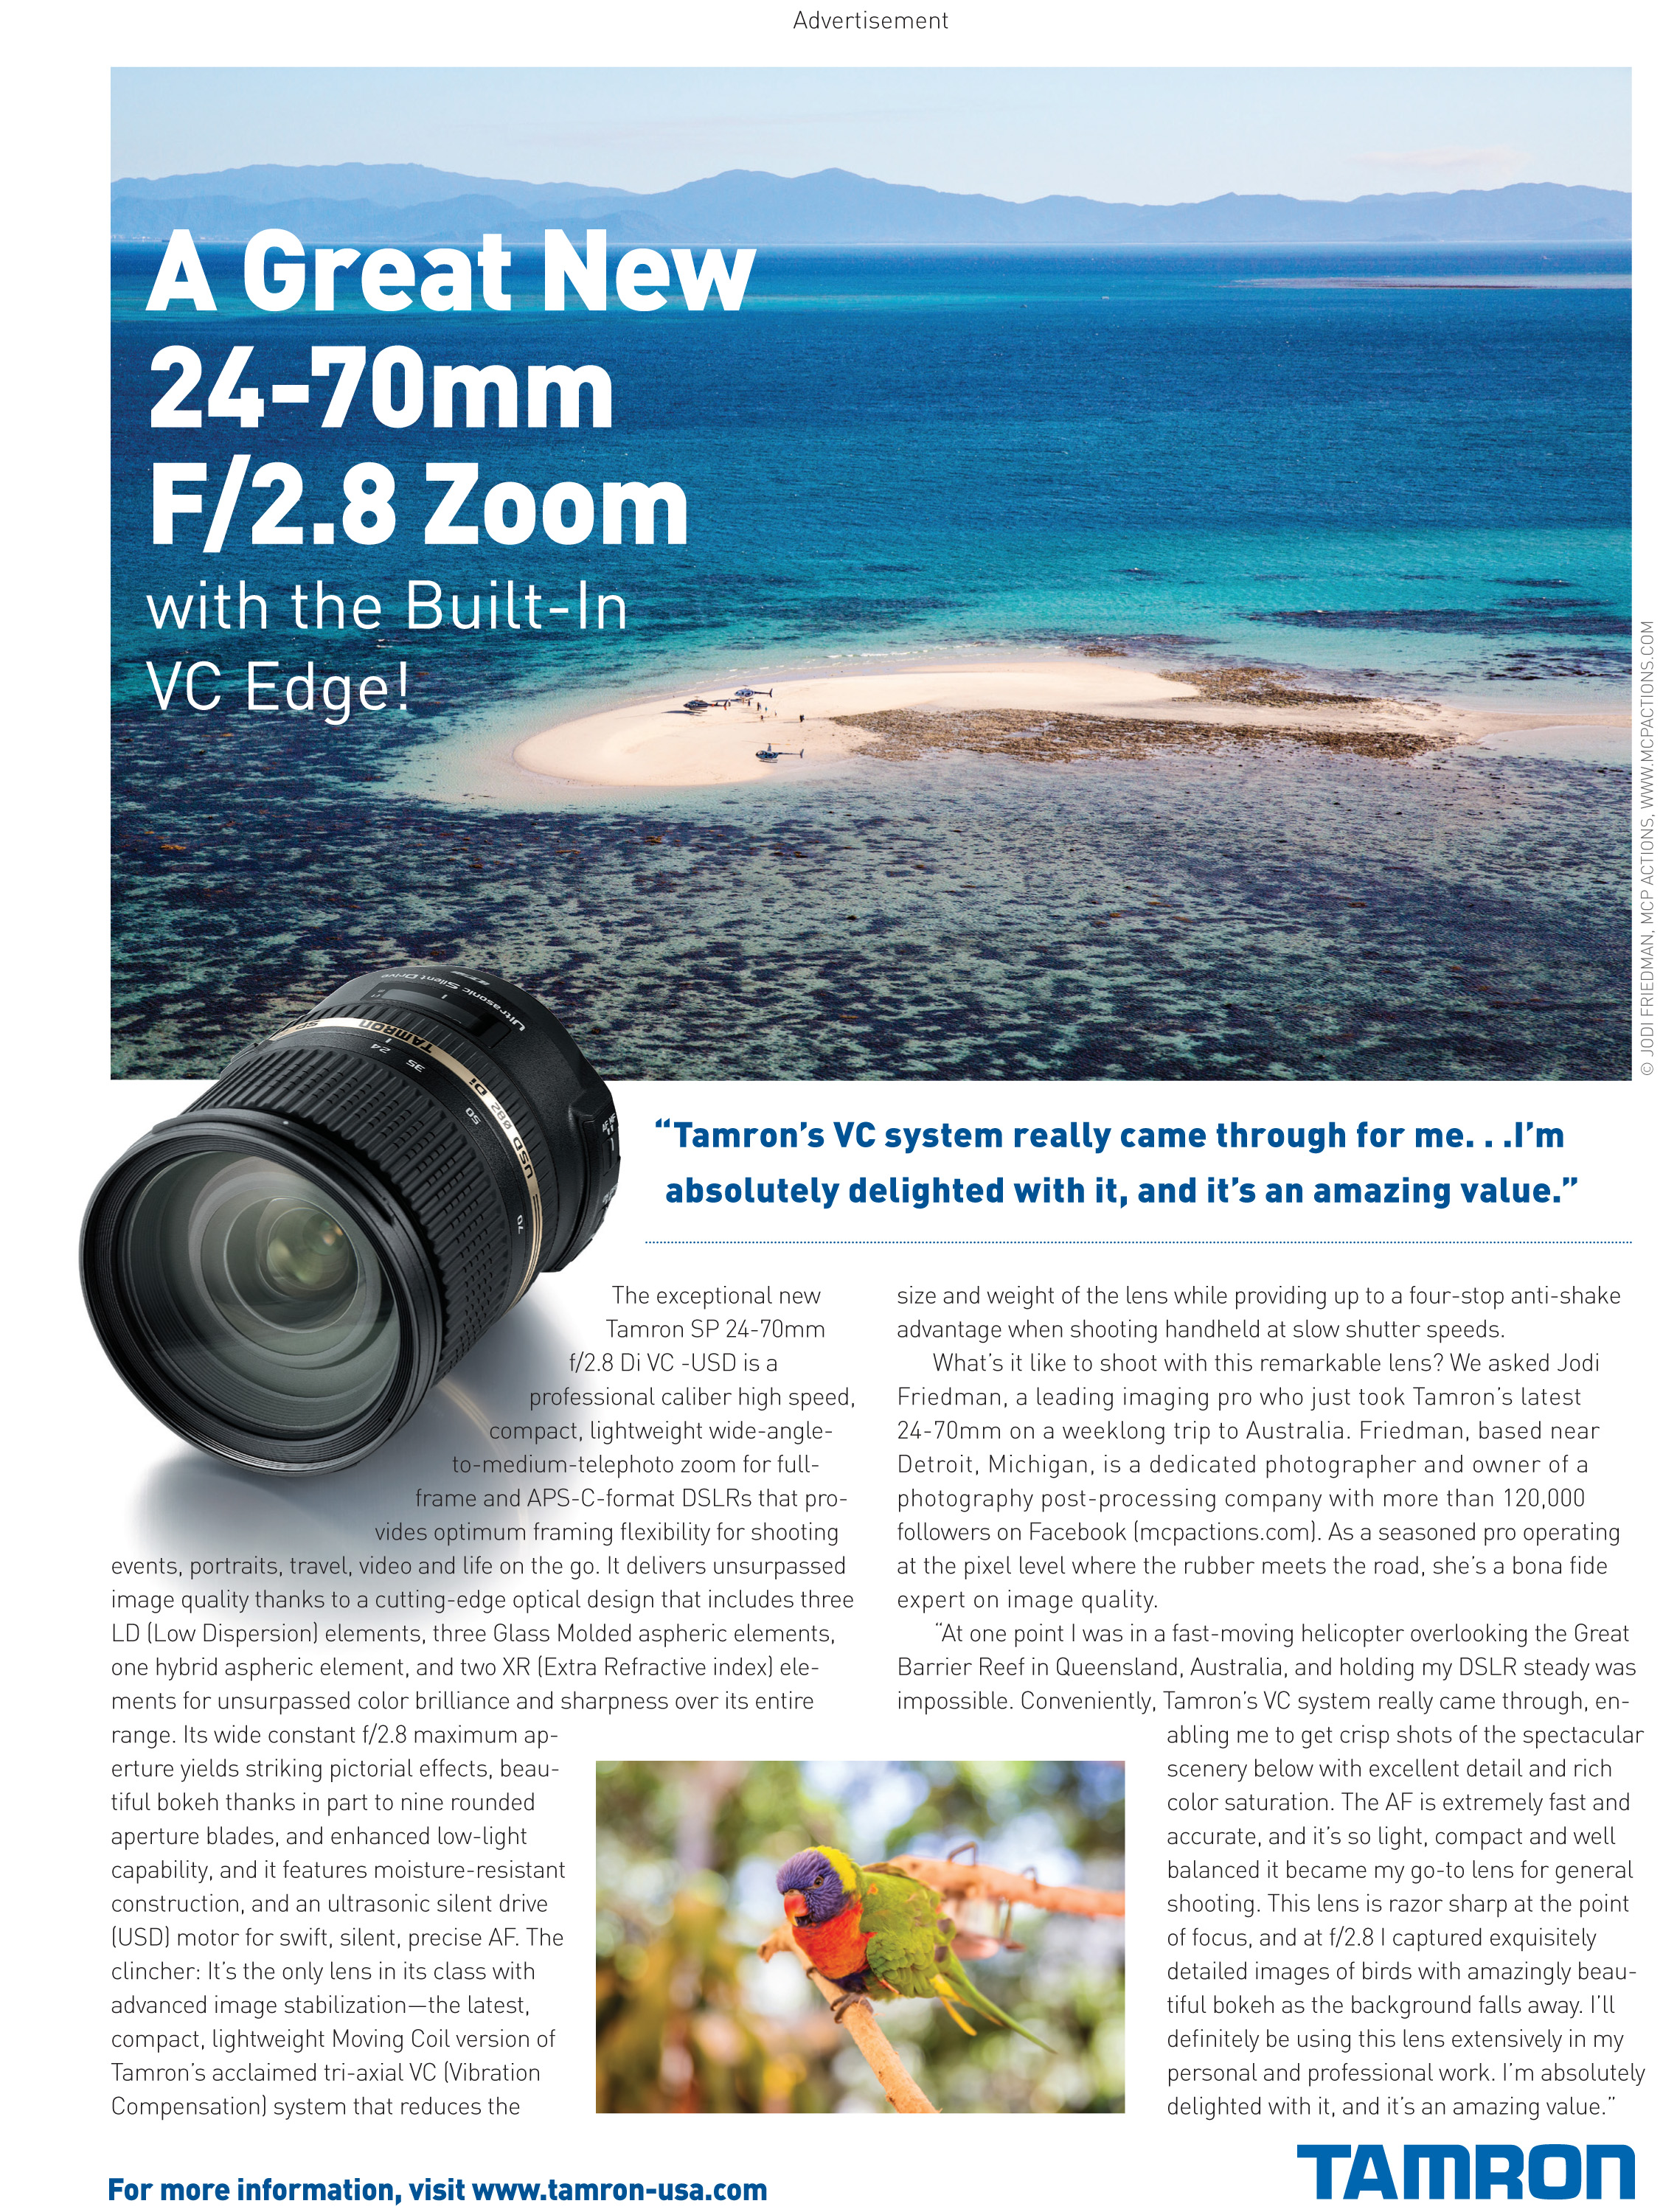 Tamron_Ad-Sept121 Contest: Win a Tamron 24-70 2.8 VC Lens for Canon, Nikon, or Sony SLR Cameras Announcements Contests